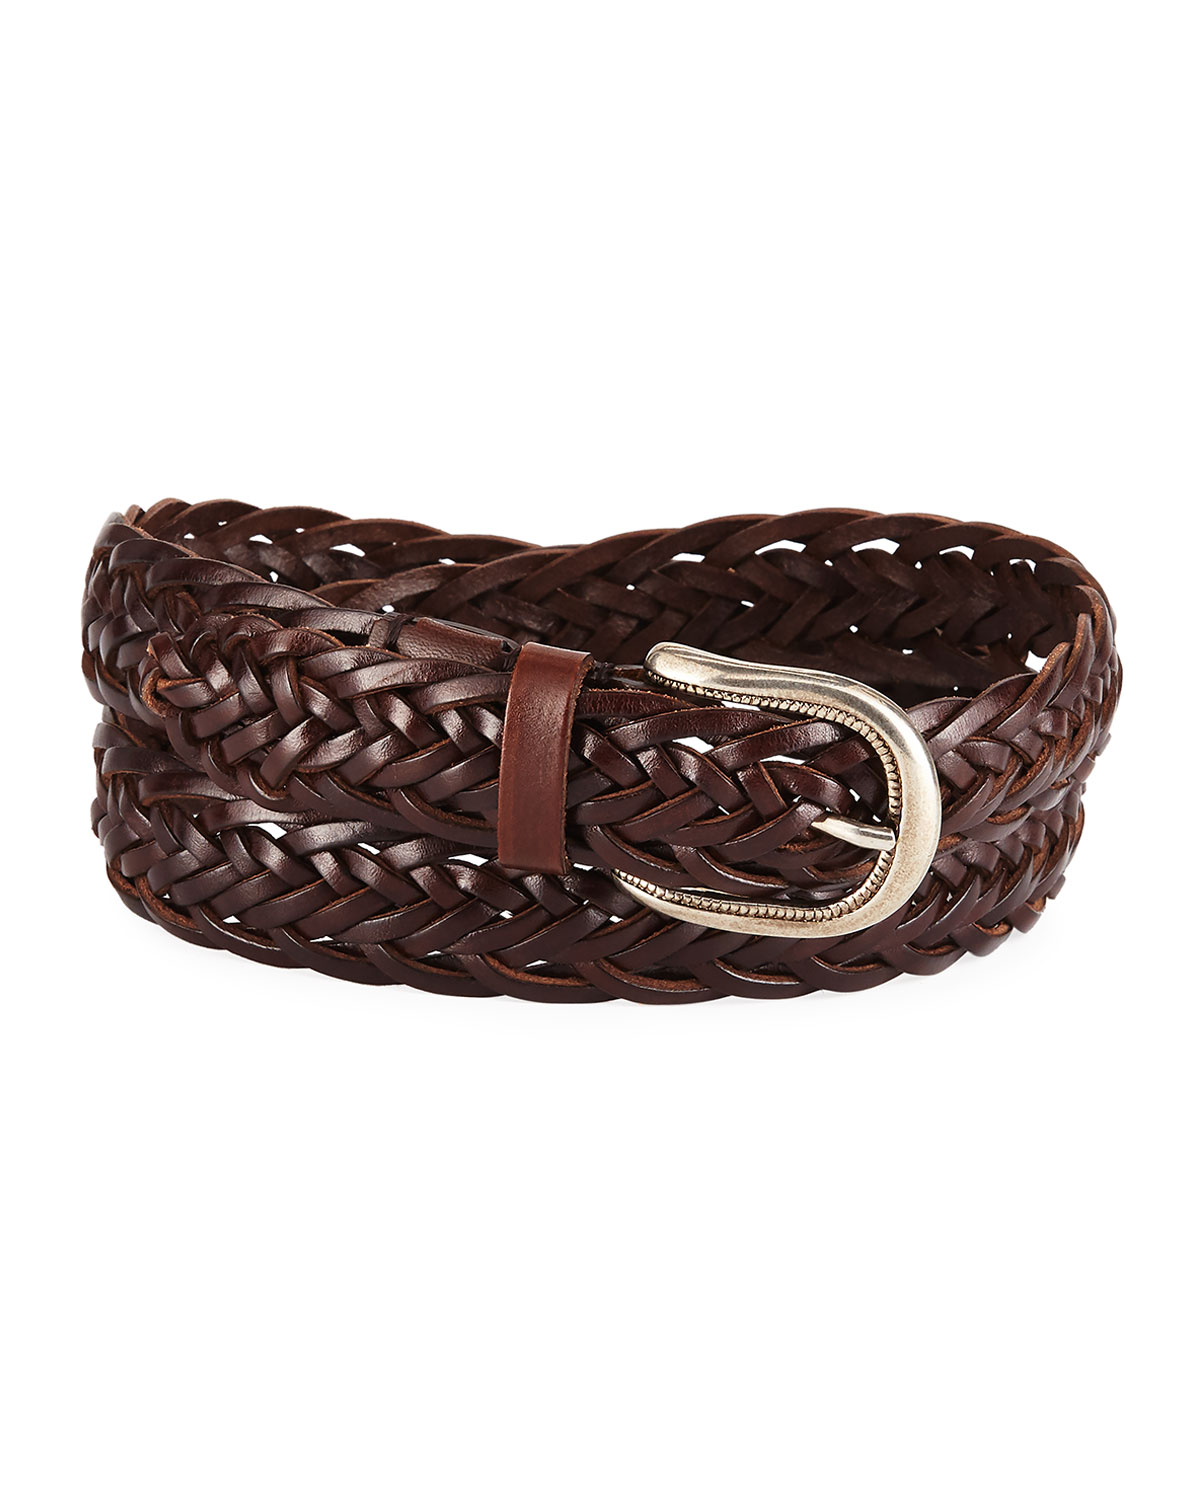 Men's Braided Leather Belt by Brunello Cucinelli